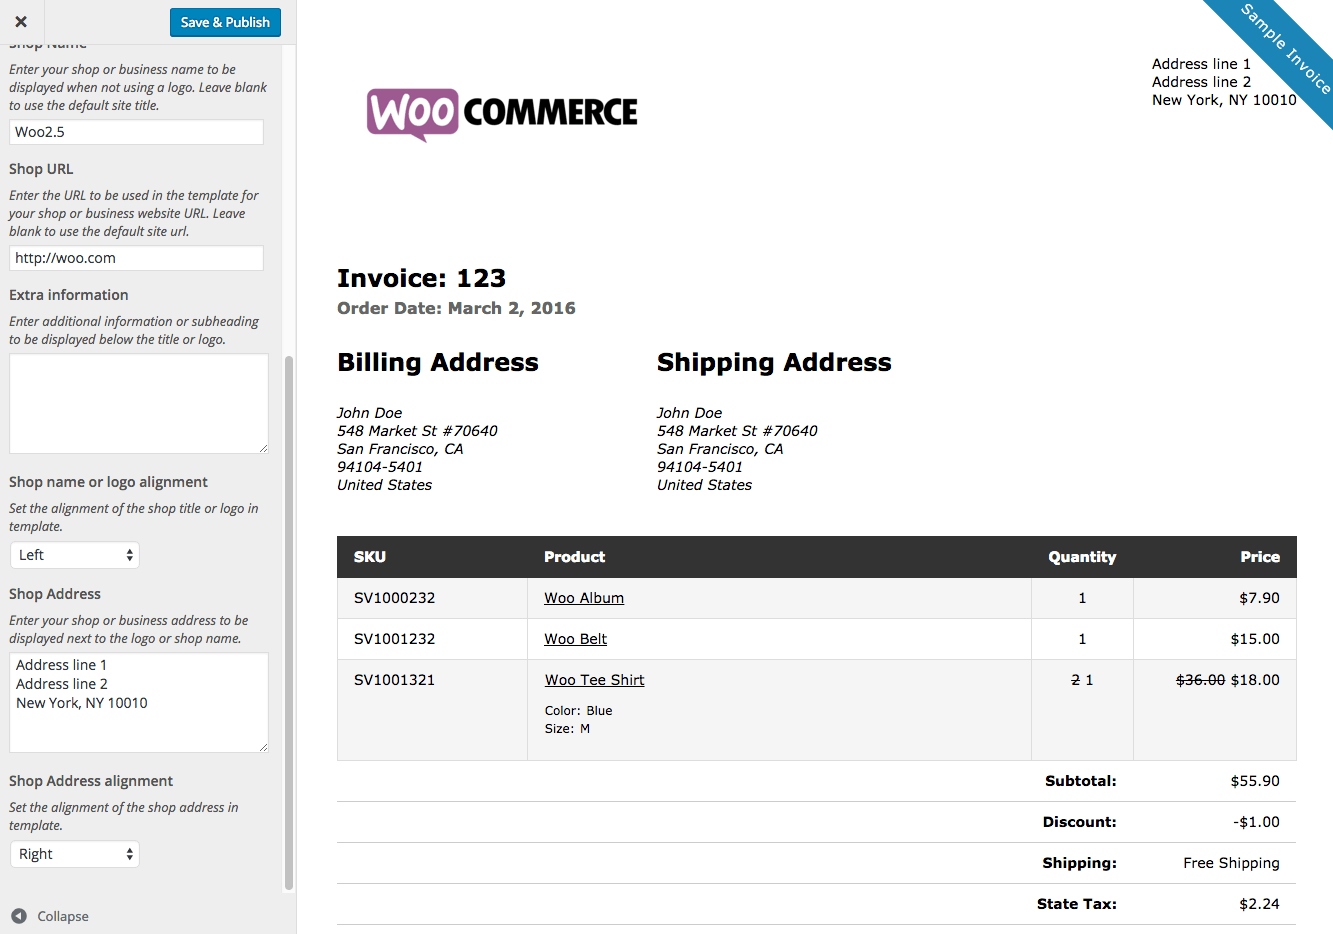 Reliefworkersus  Pleasing Woocommerce Print Invoices Amp Packing Lists  Woocommerce Docs With Fair Woocommerce Print Invoices  Packing Lists Customizer With Adorable Market Invoice Also Free Sample Invoice In Addition Hotel Invoice Template And Invoice Holder As Well As Car Invoices Additionally Invoice Pads From Docswoocommercecom With Reliefworkersus  Fair Woocommerce Print Invoices Amp Packing Lists  Woocommerce Docs With Adorable Woocommerce Print Invoices  Packing Lists Customizer And Pleasing Market Invoice Also Free Sample Invoice In Addition Hotel Invoice Template From Docswoocommercecom